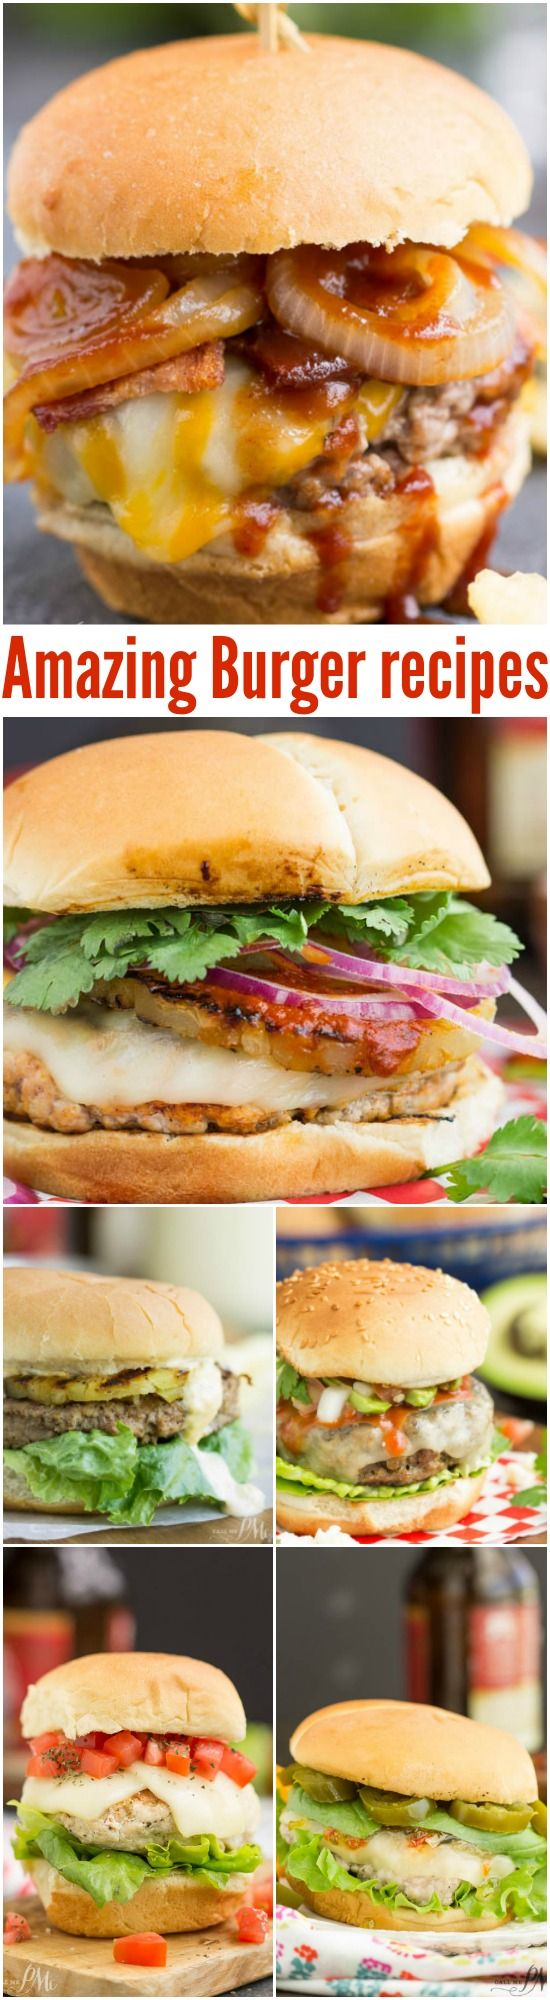 10 Amazing Burger recipes - (REPLACE: Pork items with choice Kosher or Vegetarian items)